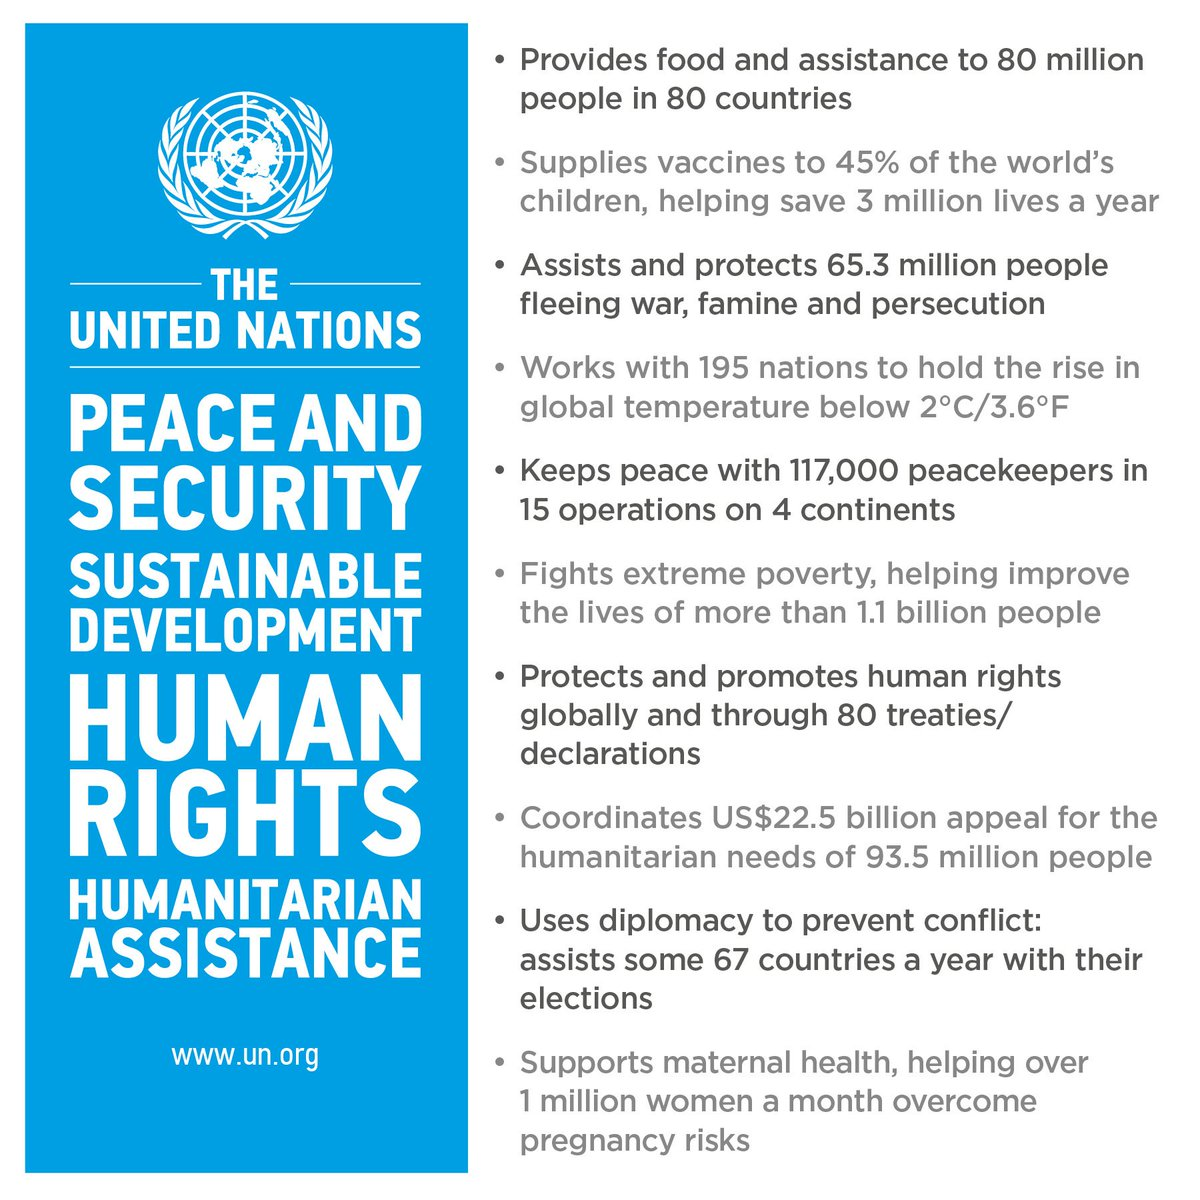 What's happening this week at the UN? #UNDay, @antonioguterres visit to Central African Republic & more: https://t.co/HDzhfjjC8u